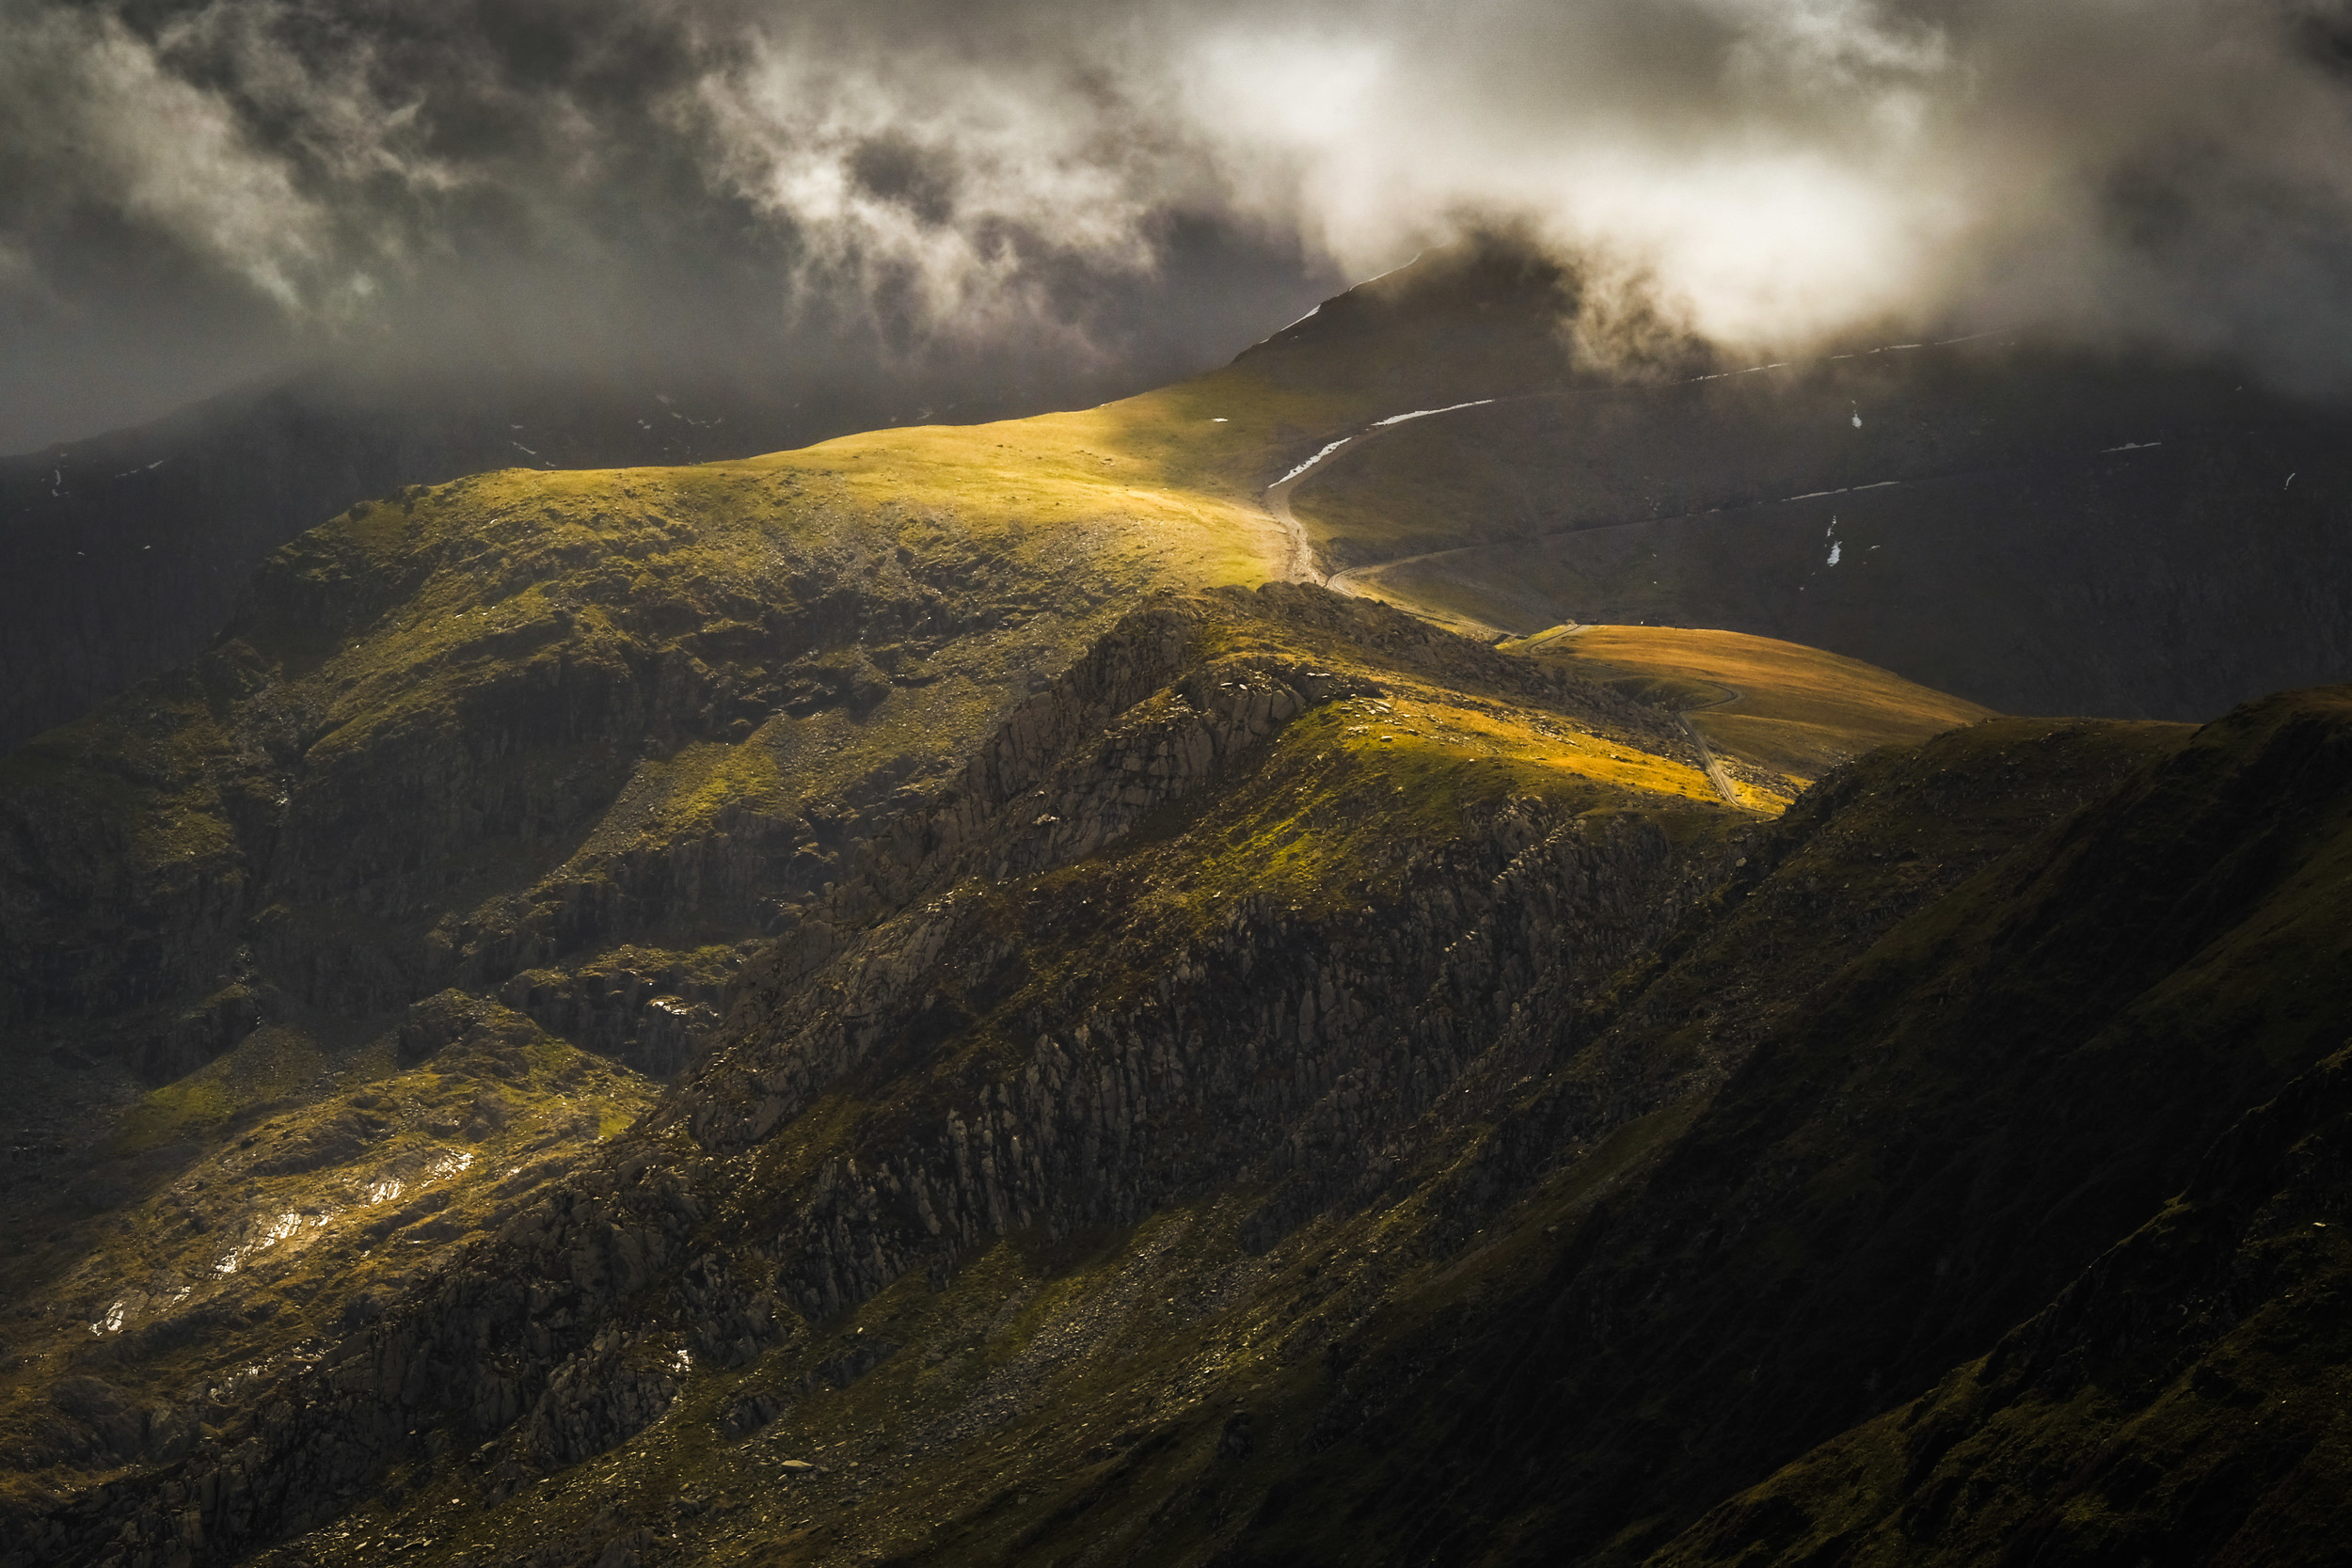 Light over Snowdon. Fujifilm X-T2 + 50-140mm f/2.8 @ 140mm. f/16. 1/70. ISO 200.